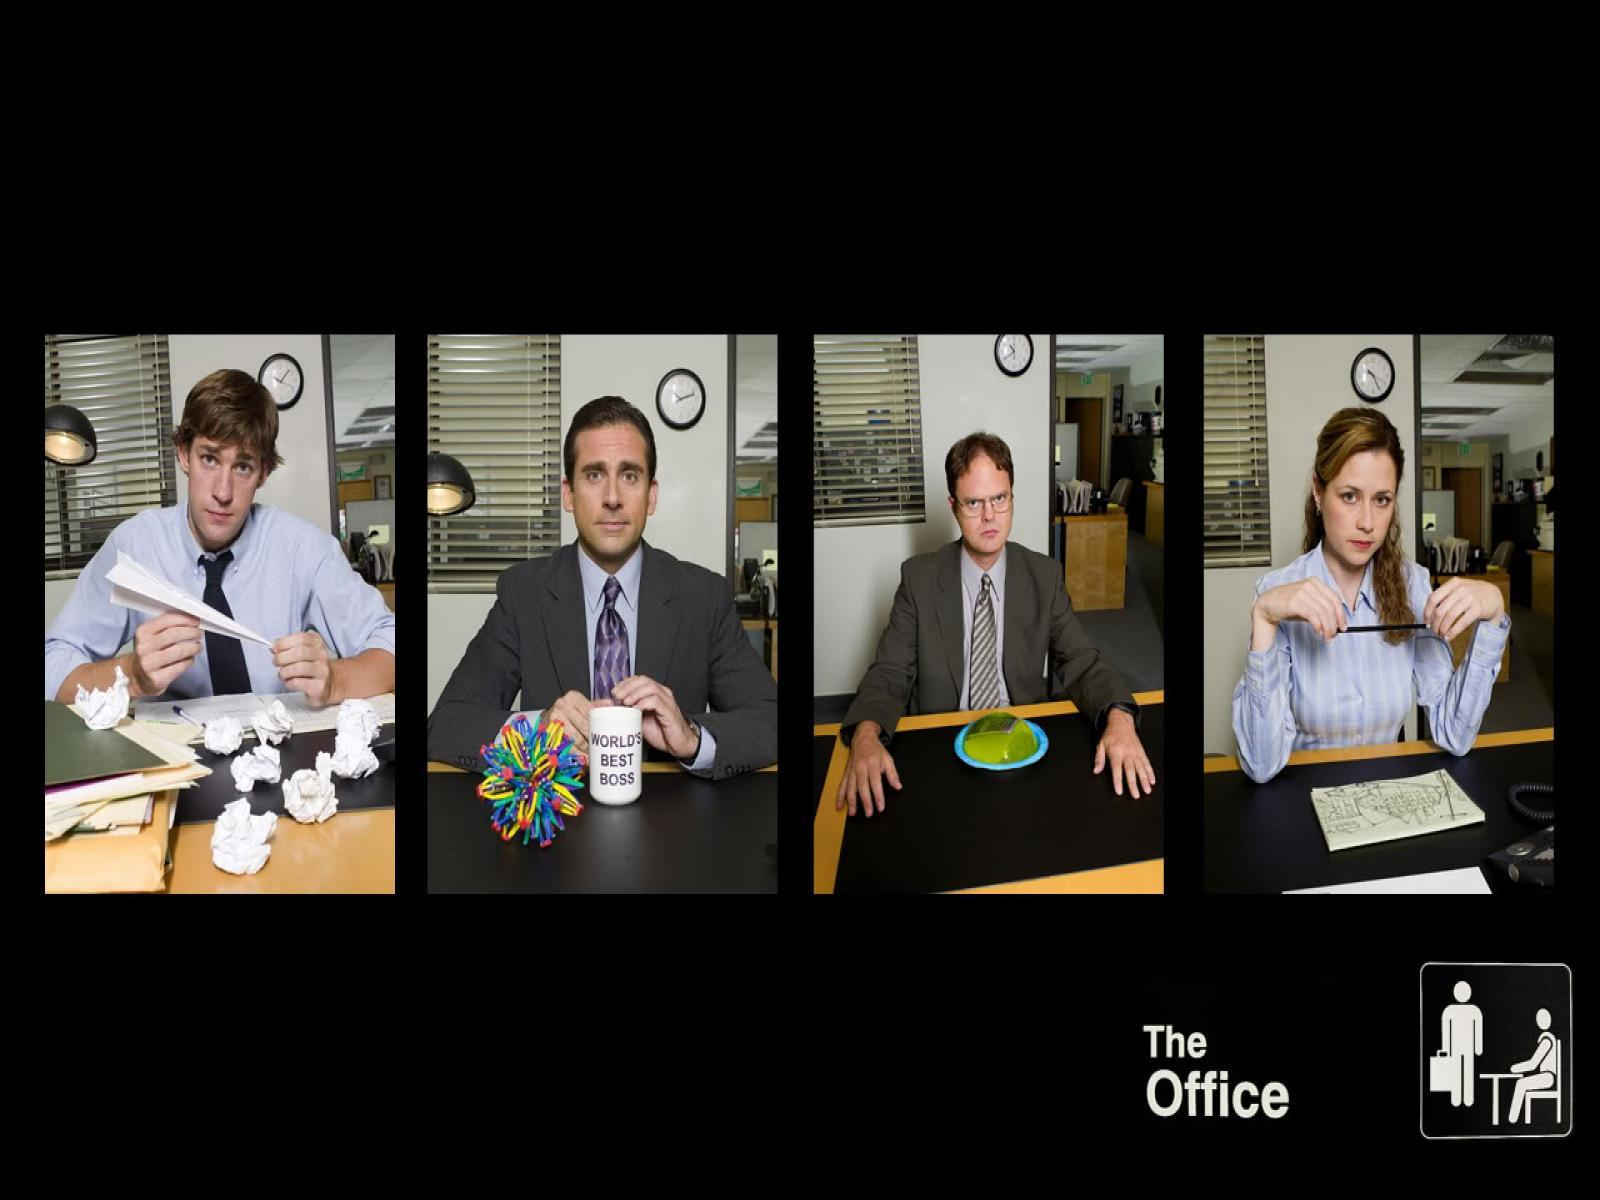 7Q474T2 The Office Wallpapers 1280x800 px